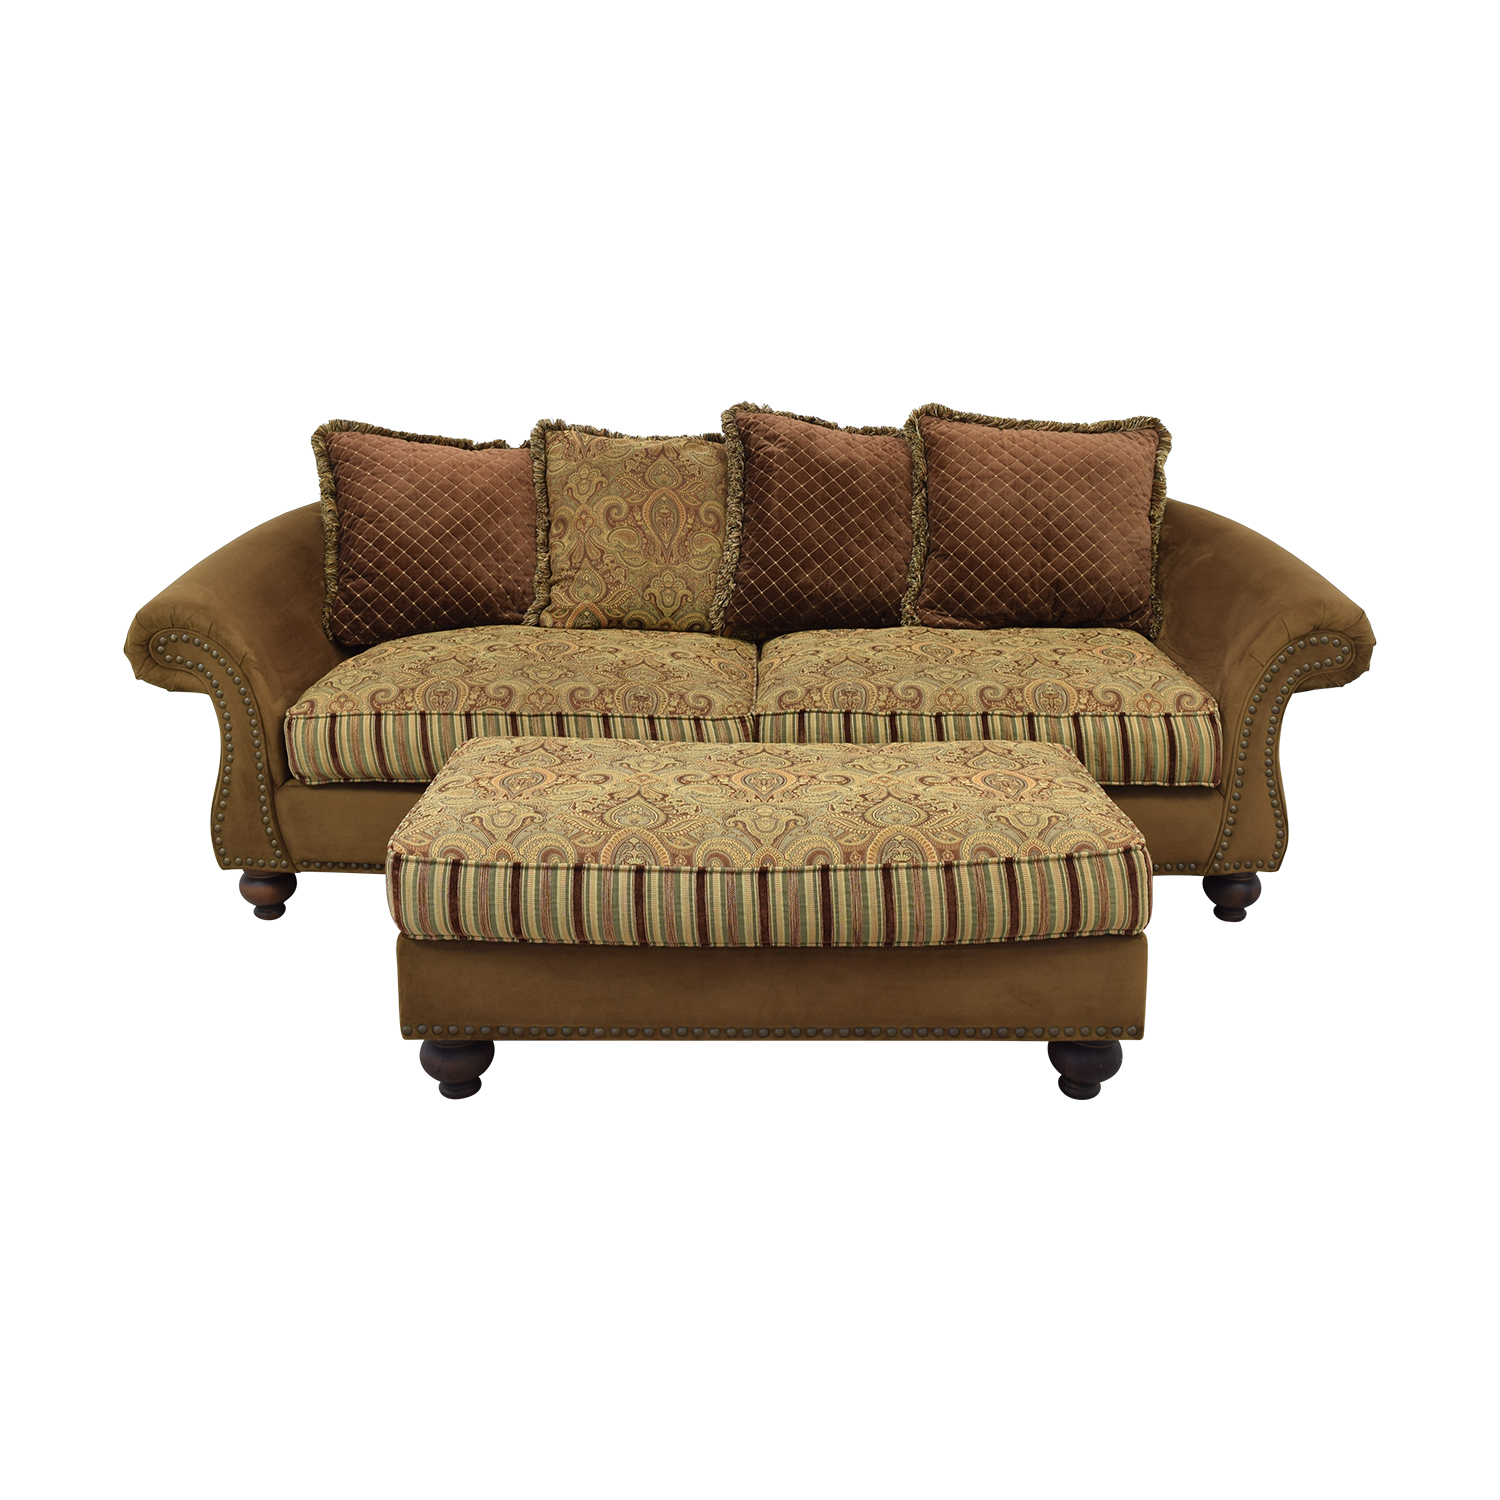 Cindy Crawford Home Cindy Crawford Home Couch and Ottoman coupon